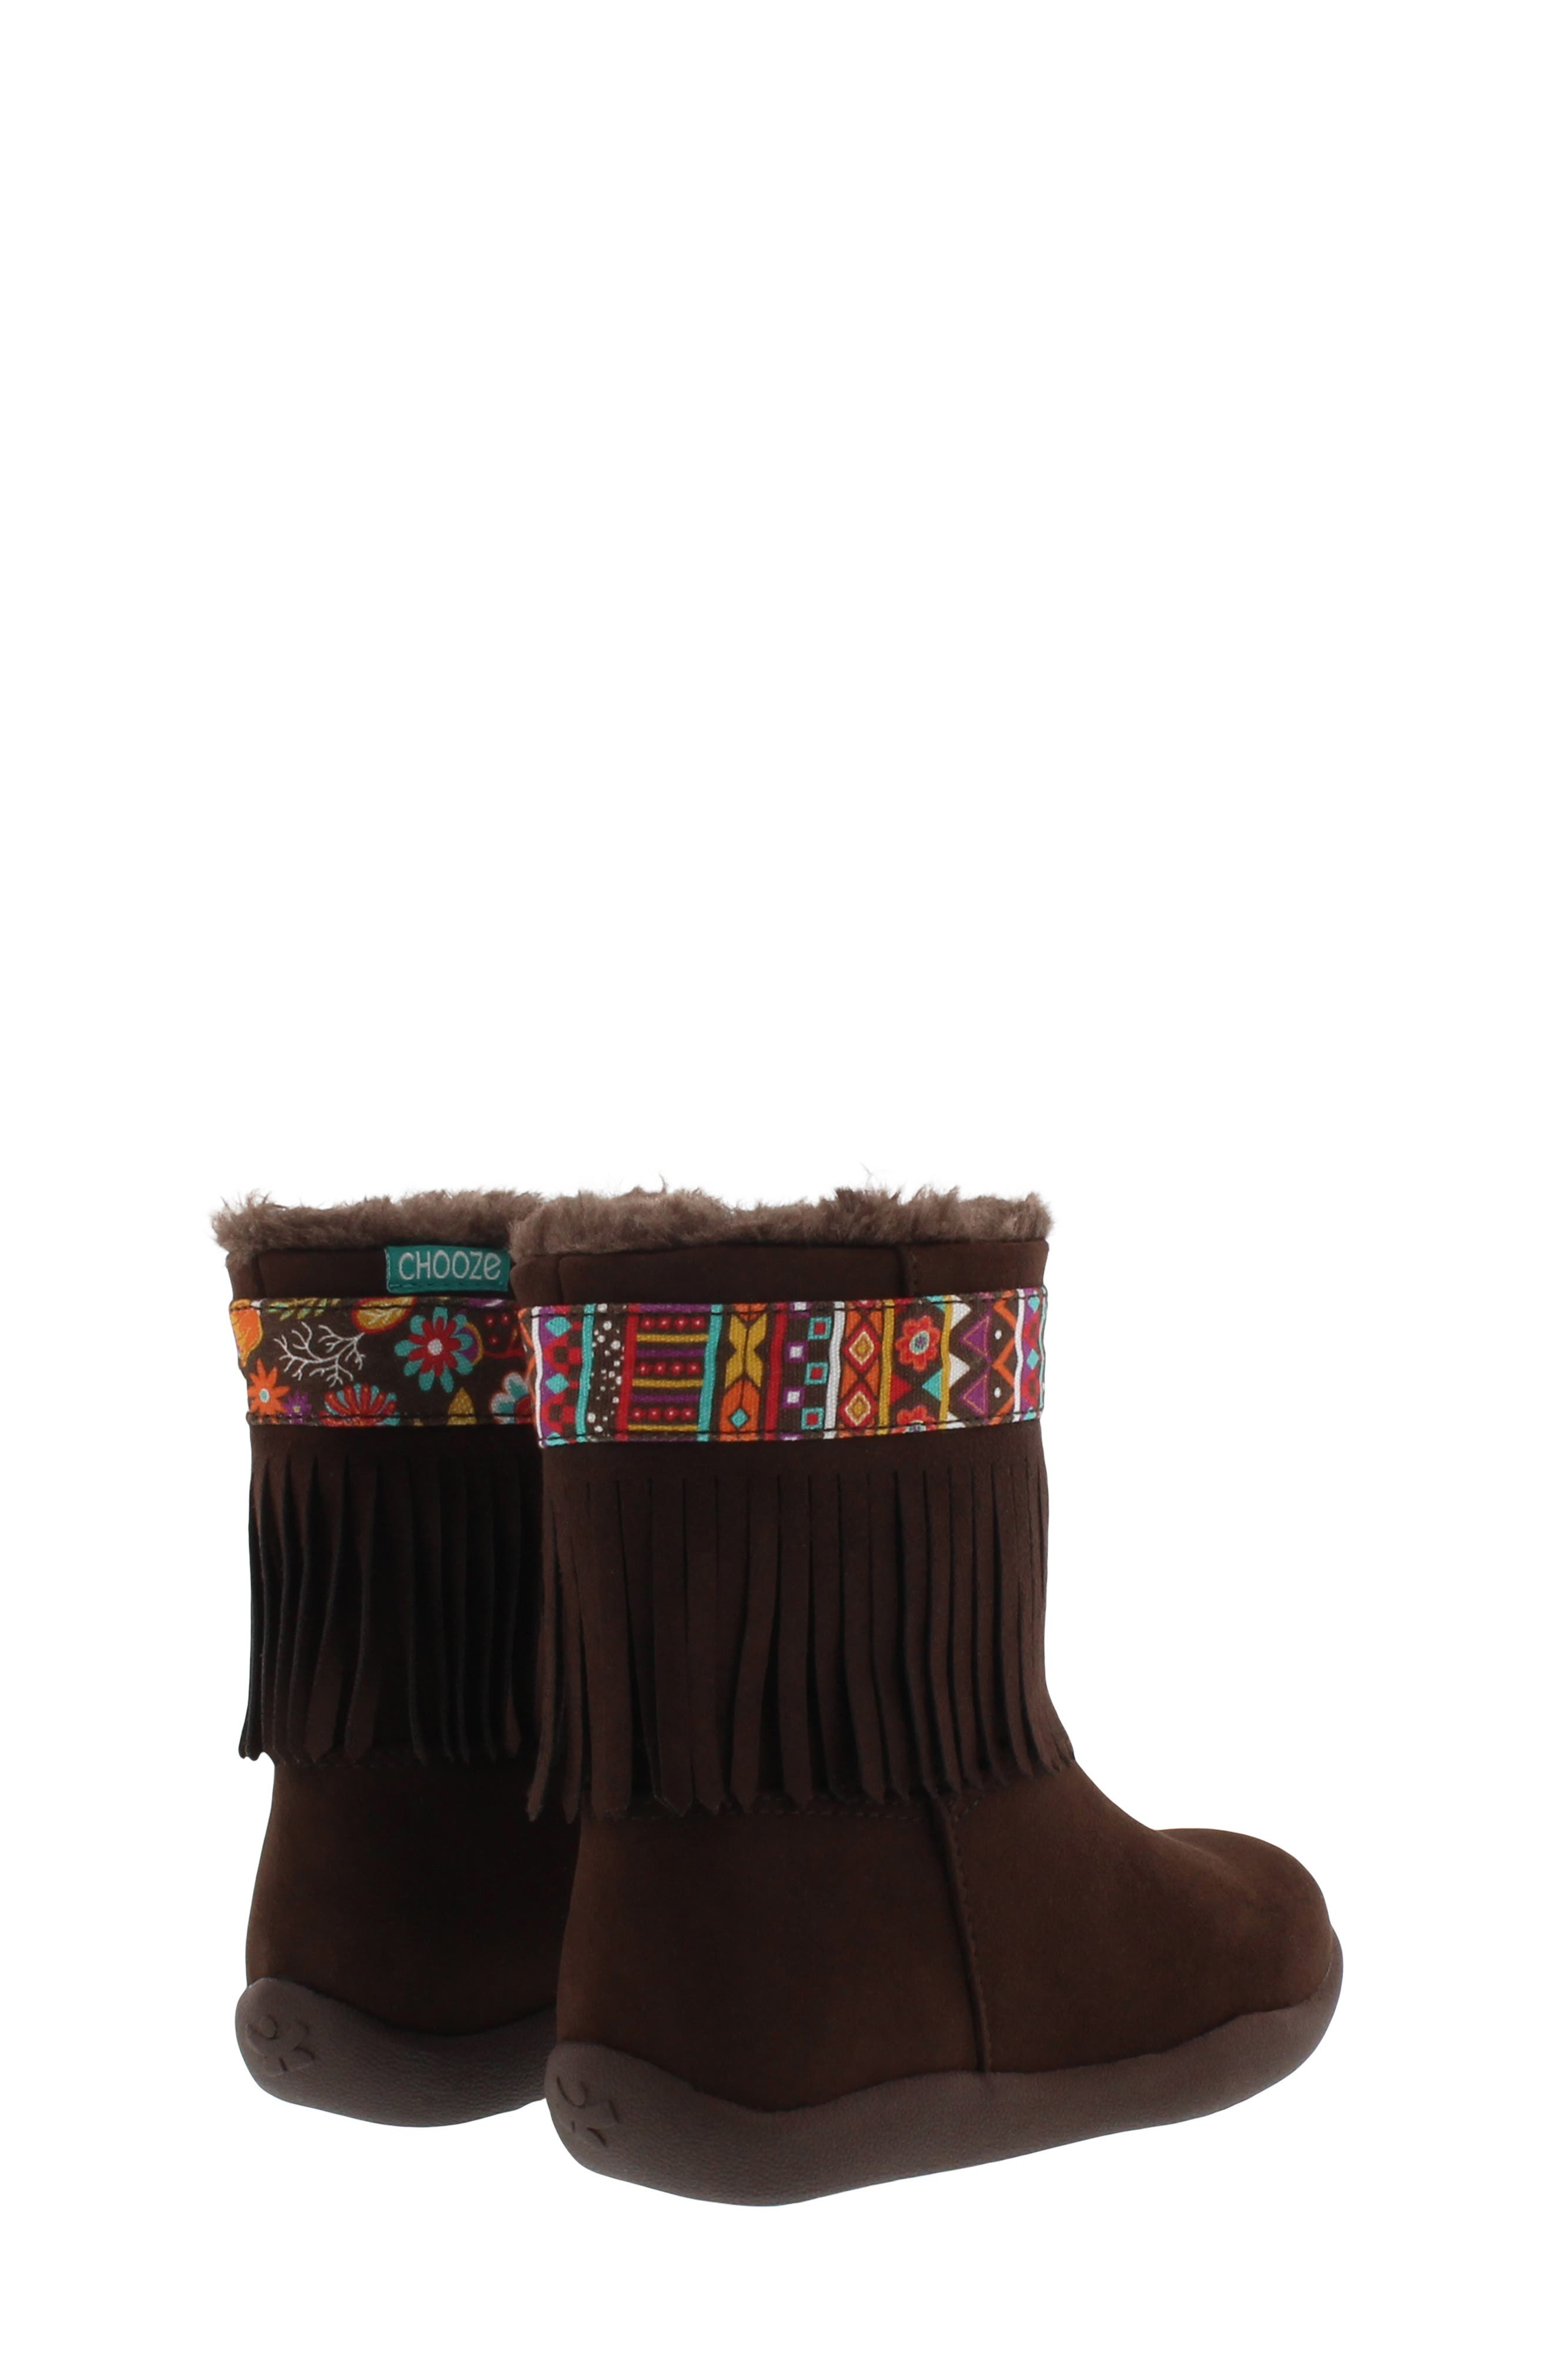 CHOOZE, Faux Fur Fringed Hope Bootie, Alternate thumbnail 2, color, BROWN